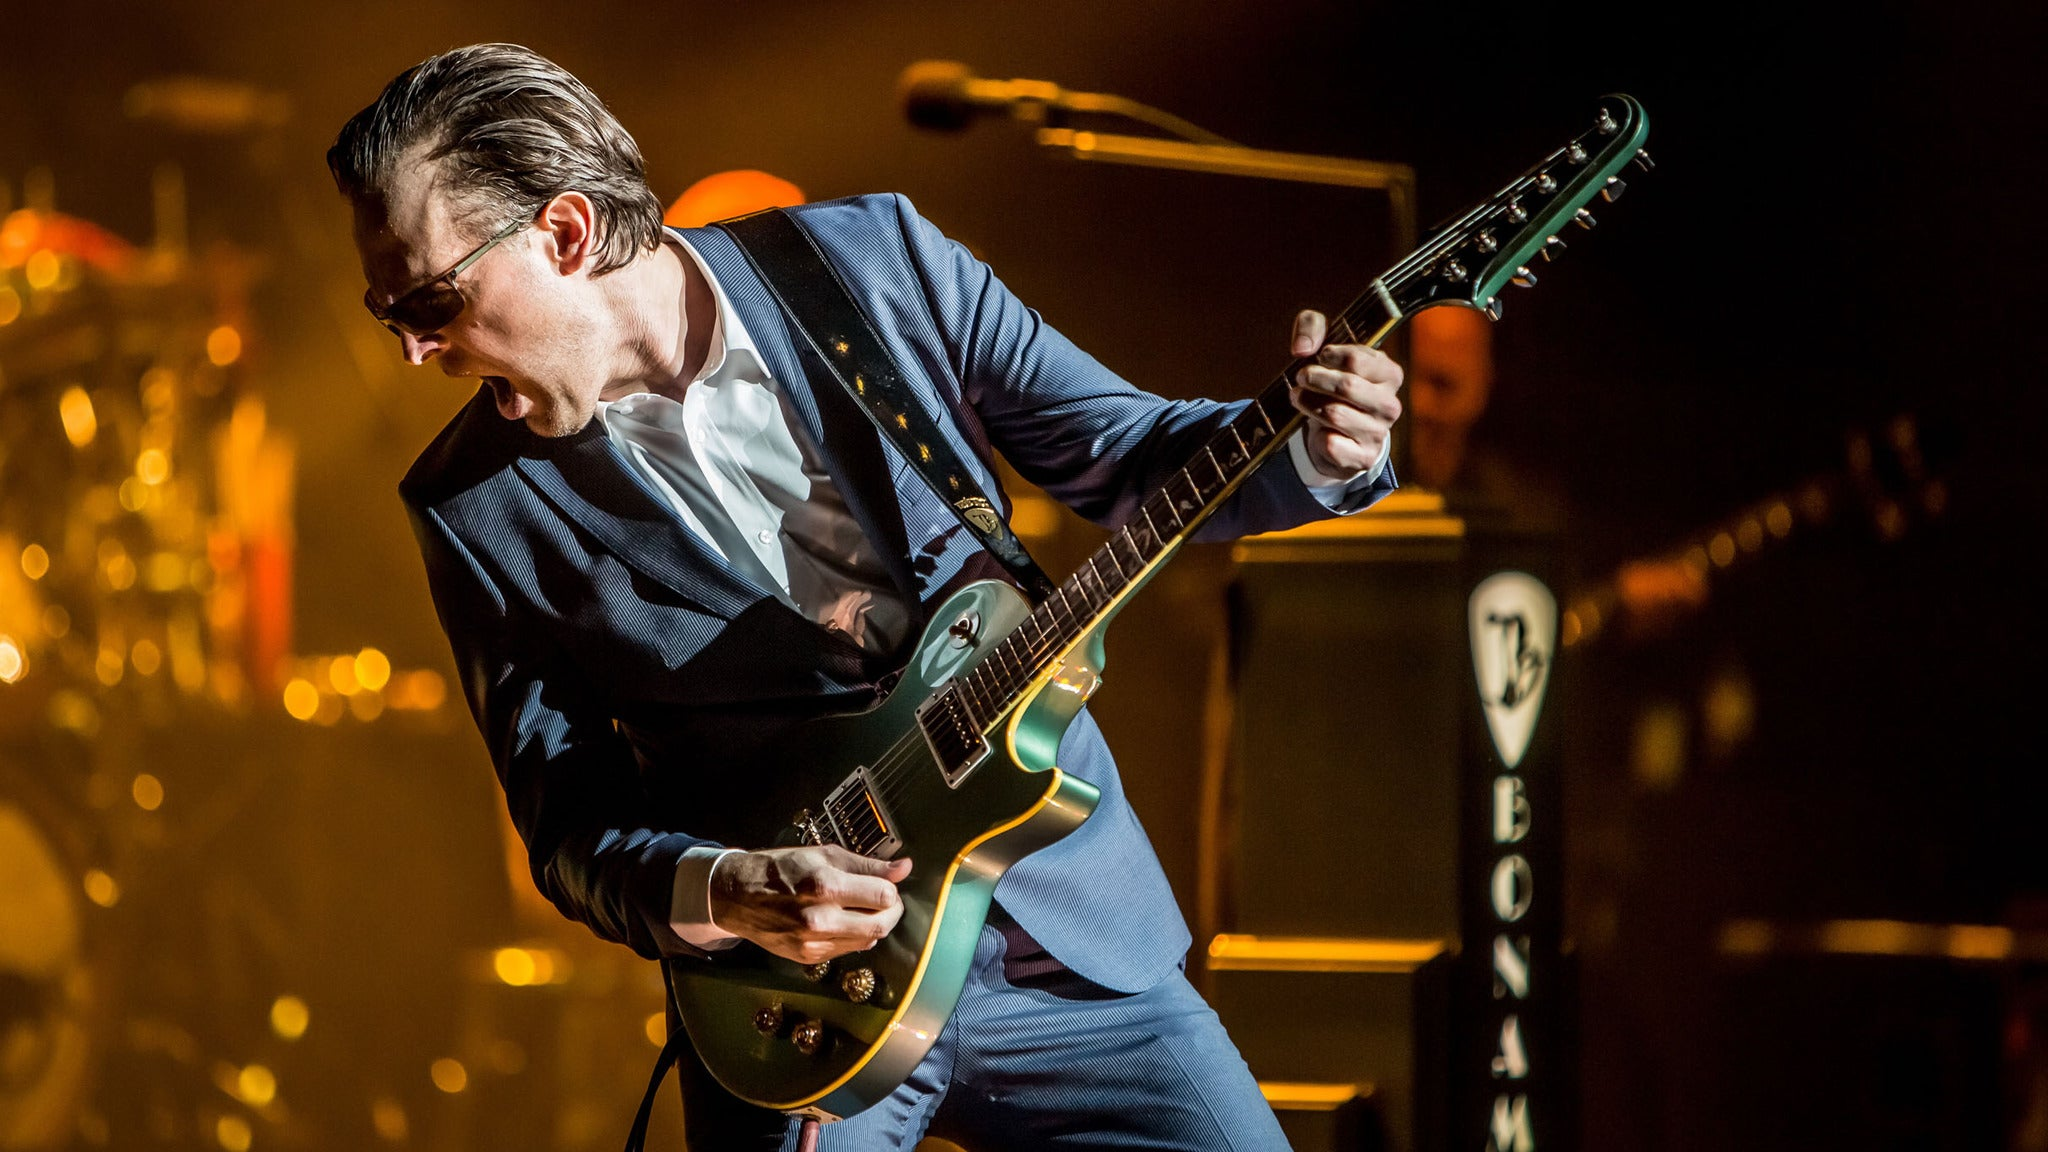 Joe Bonamassa at The Show - Agua Caliente Casino